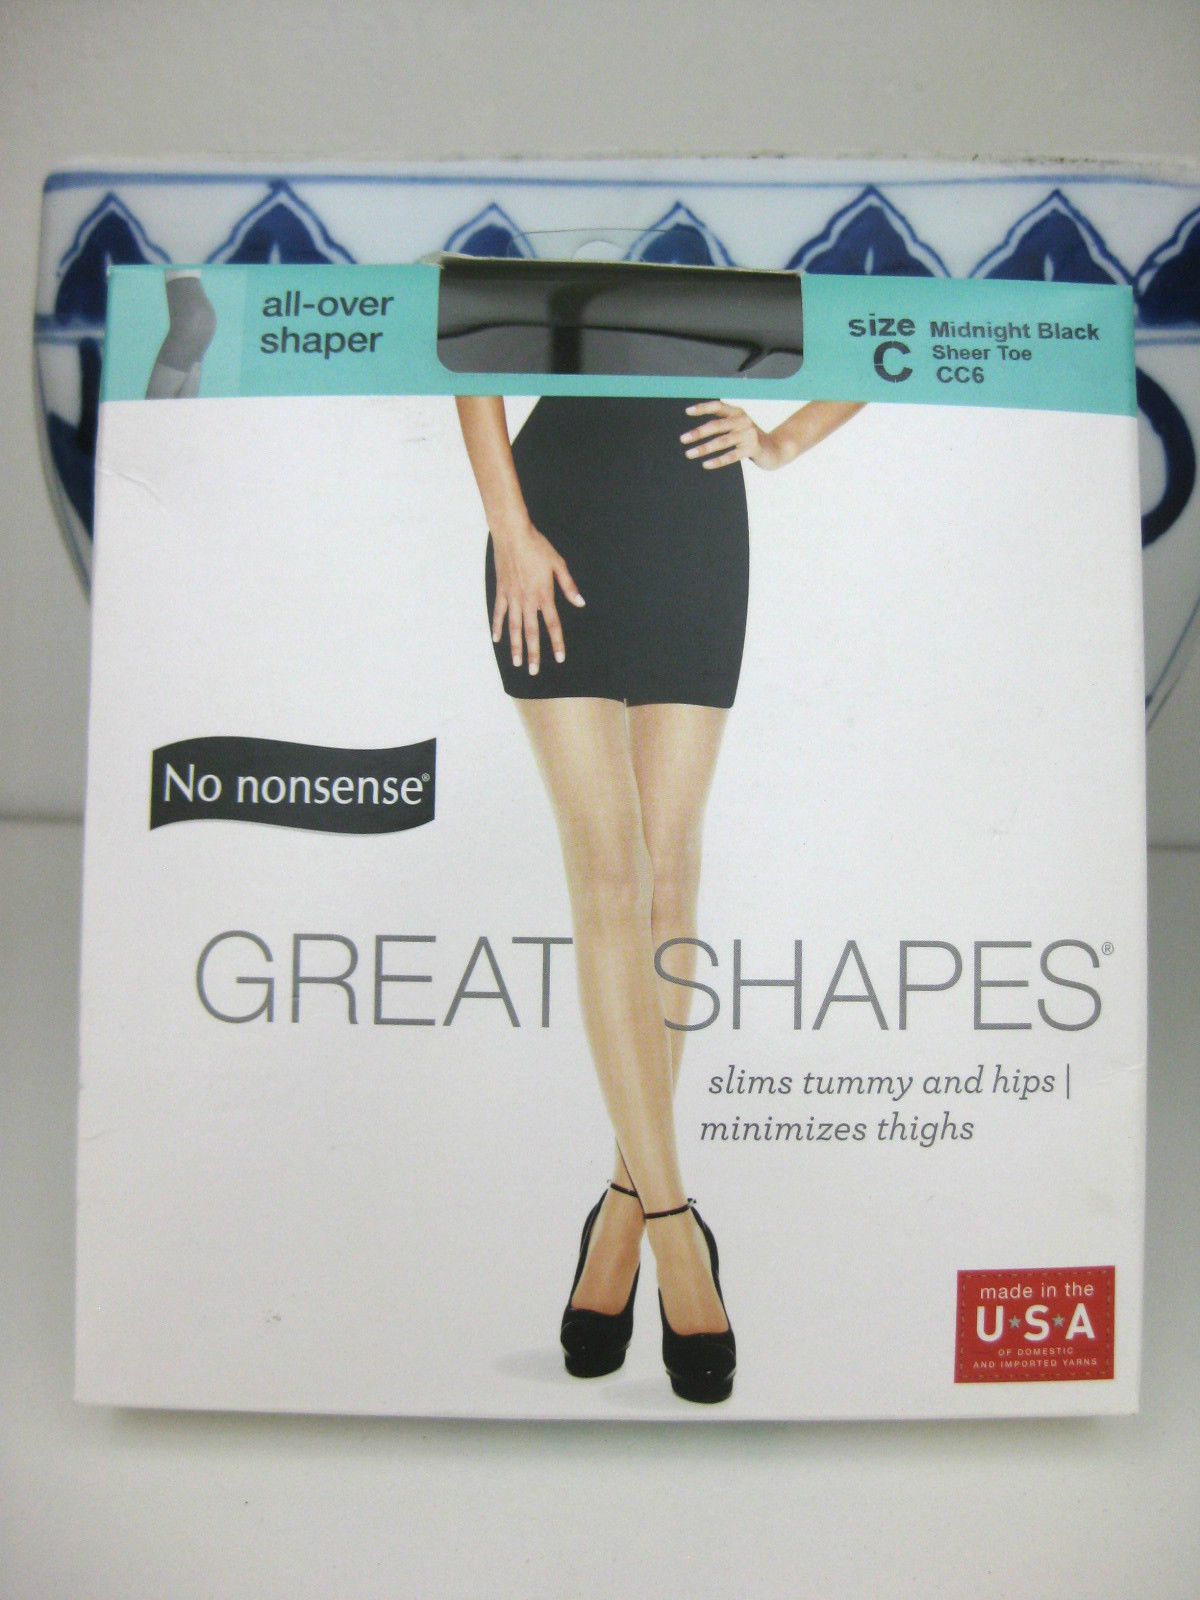 cc73a1a51880a No Nonsense PANTYHOSE Great Shapes All-Over Shaper Sheer Toe Midnight Black  C